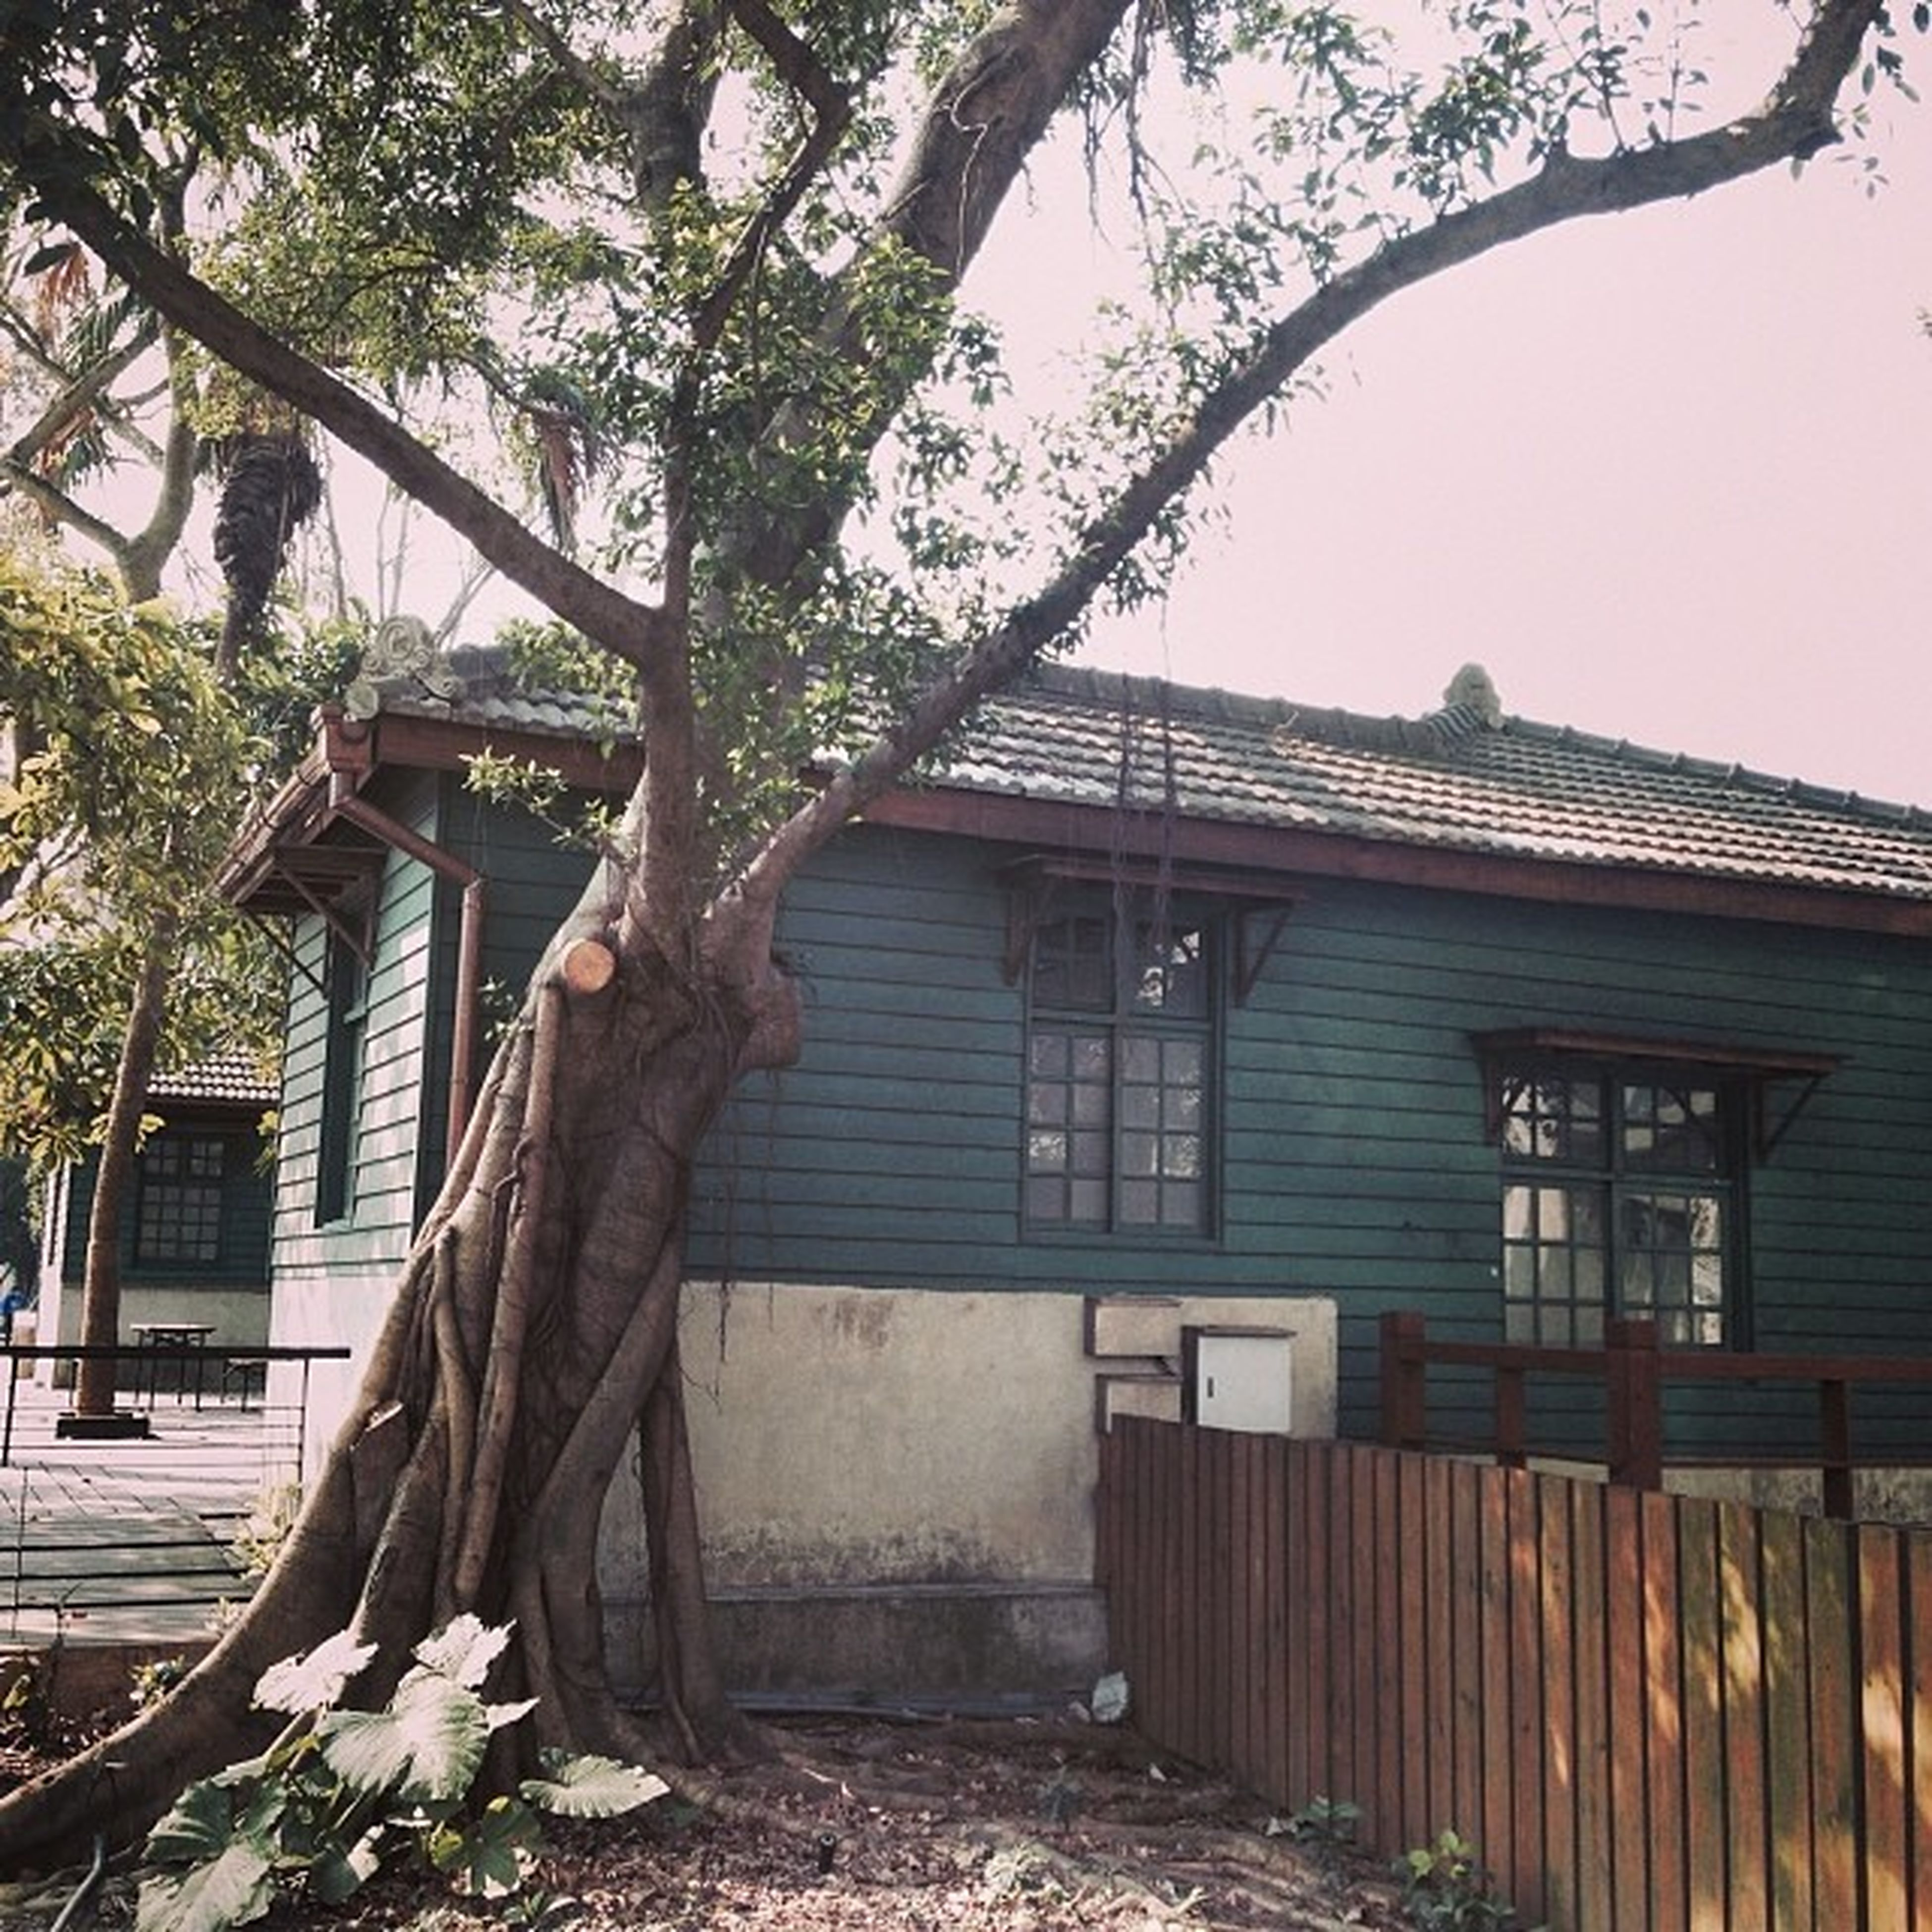 architecture, building exterior, built structure, house, tree, residential structure, window, residential building, building, branch, abandoned, day, plant, low angle view, outdoors, no people, growth, old, wood - material, sky